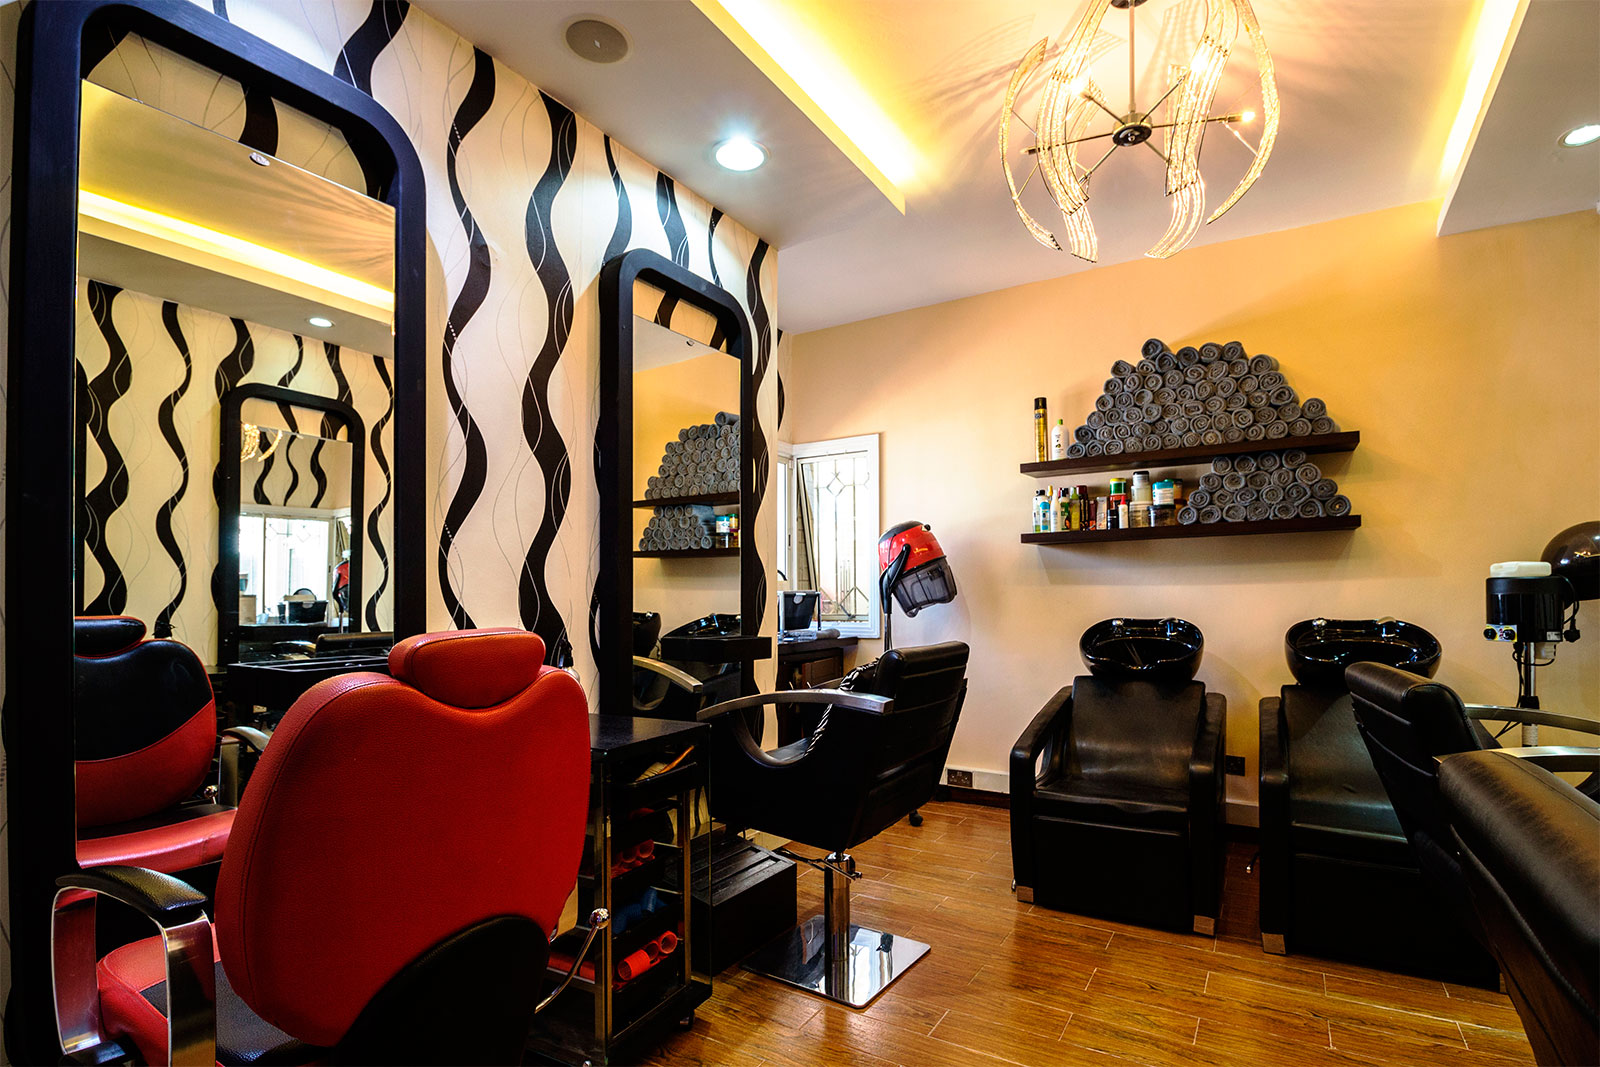 manicure, pedicure, revitalize, wellness, spa, salon